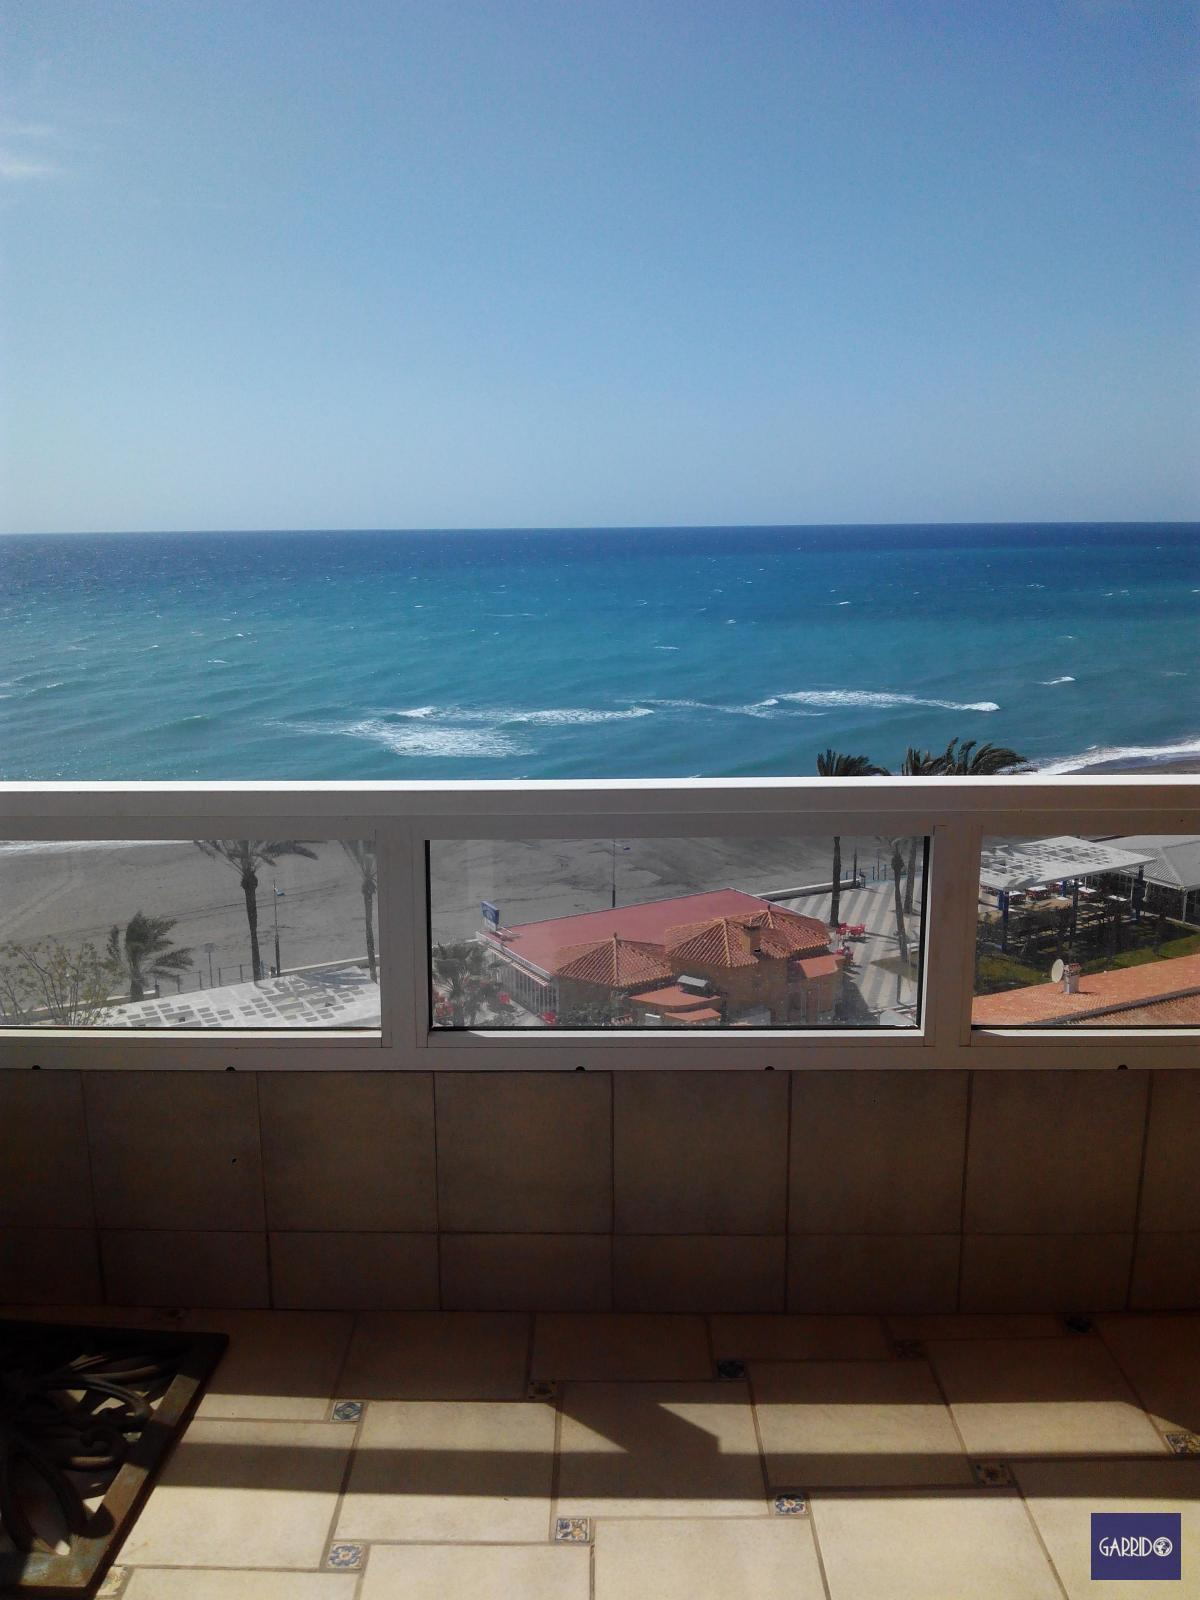 Appartement te koop in Torrox Costa, 189.000 € (Ref.: 71)